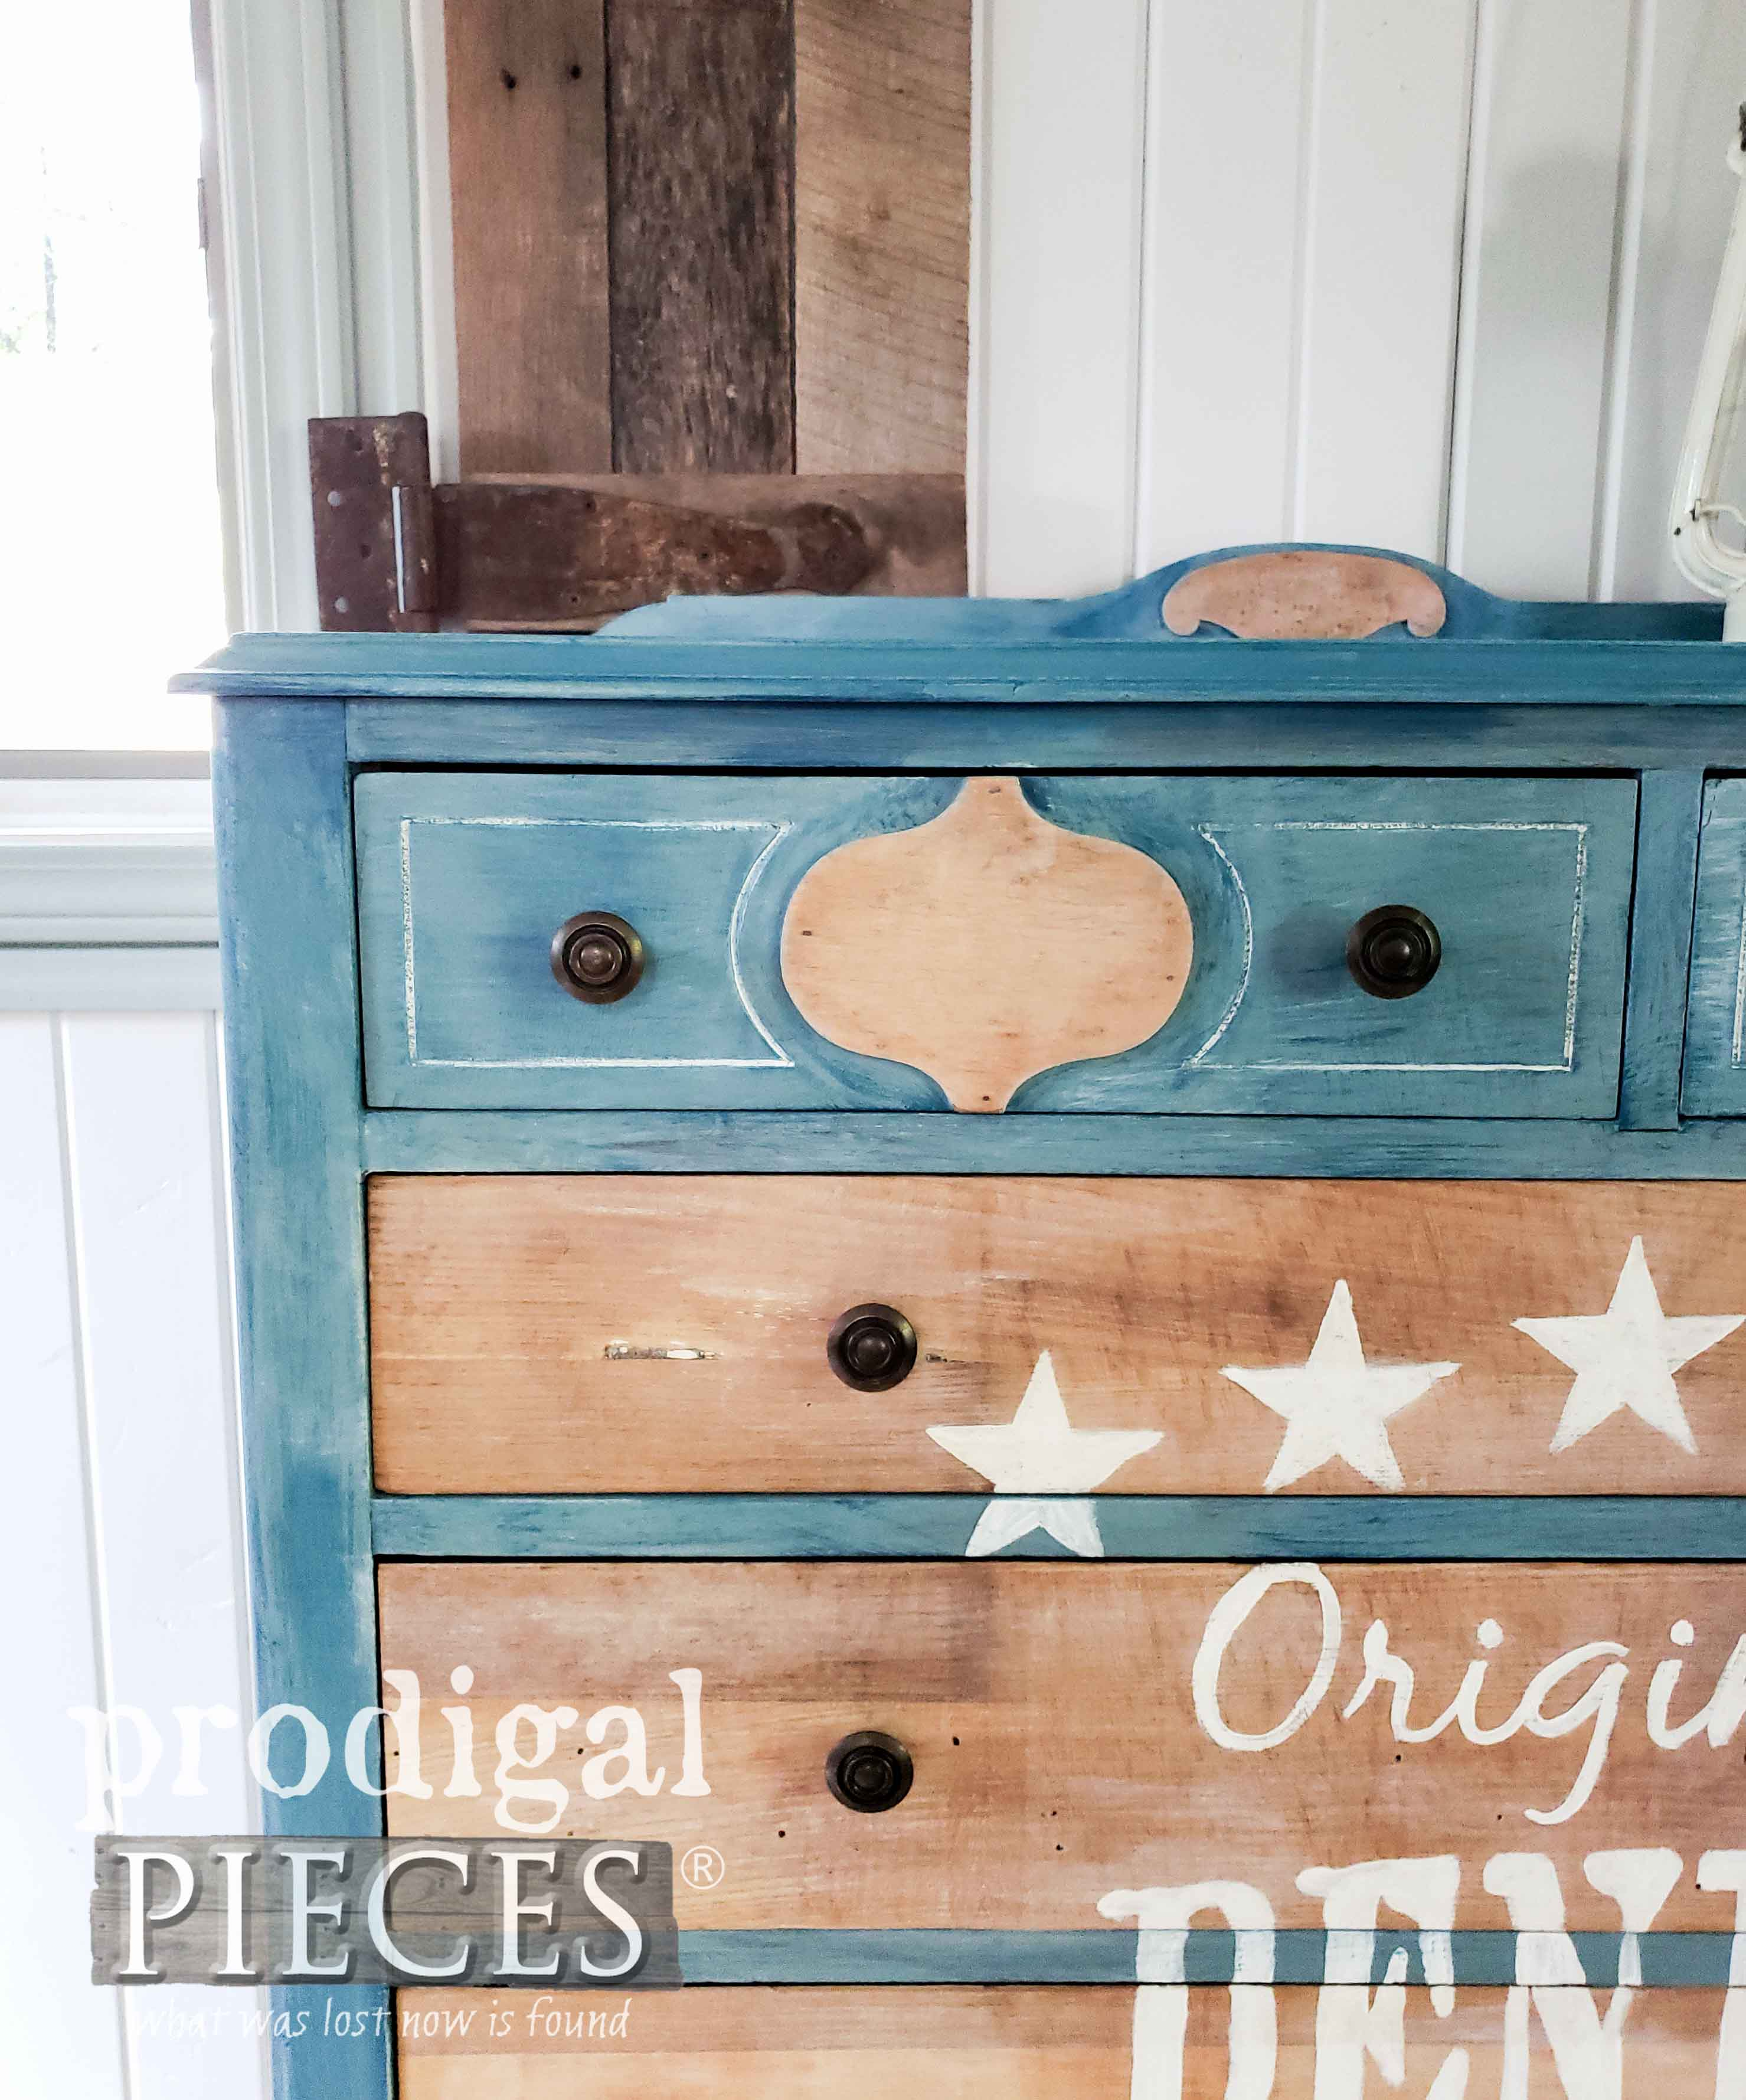 Antique Chest of Drawers Given Time-Worn Denim Effect by Larissa of Prodigal Pieces | prodigalpieces.com #prodigalpieces #furniture #art #home #homedecor #farmhouse